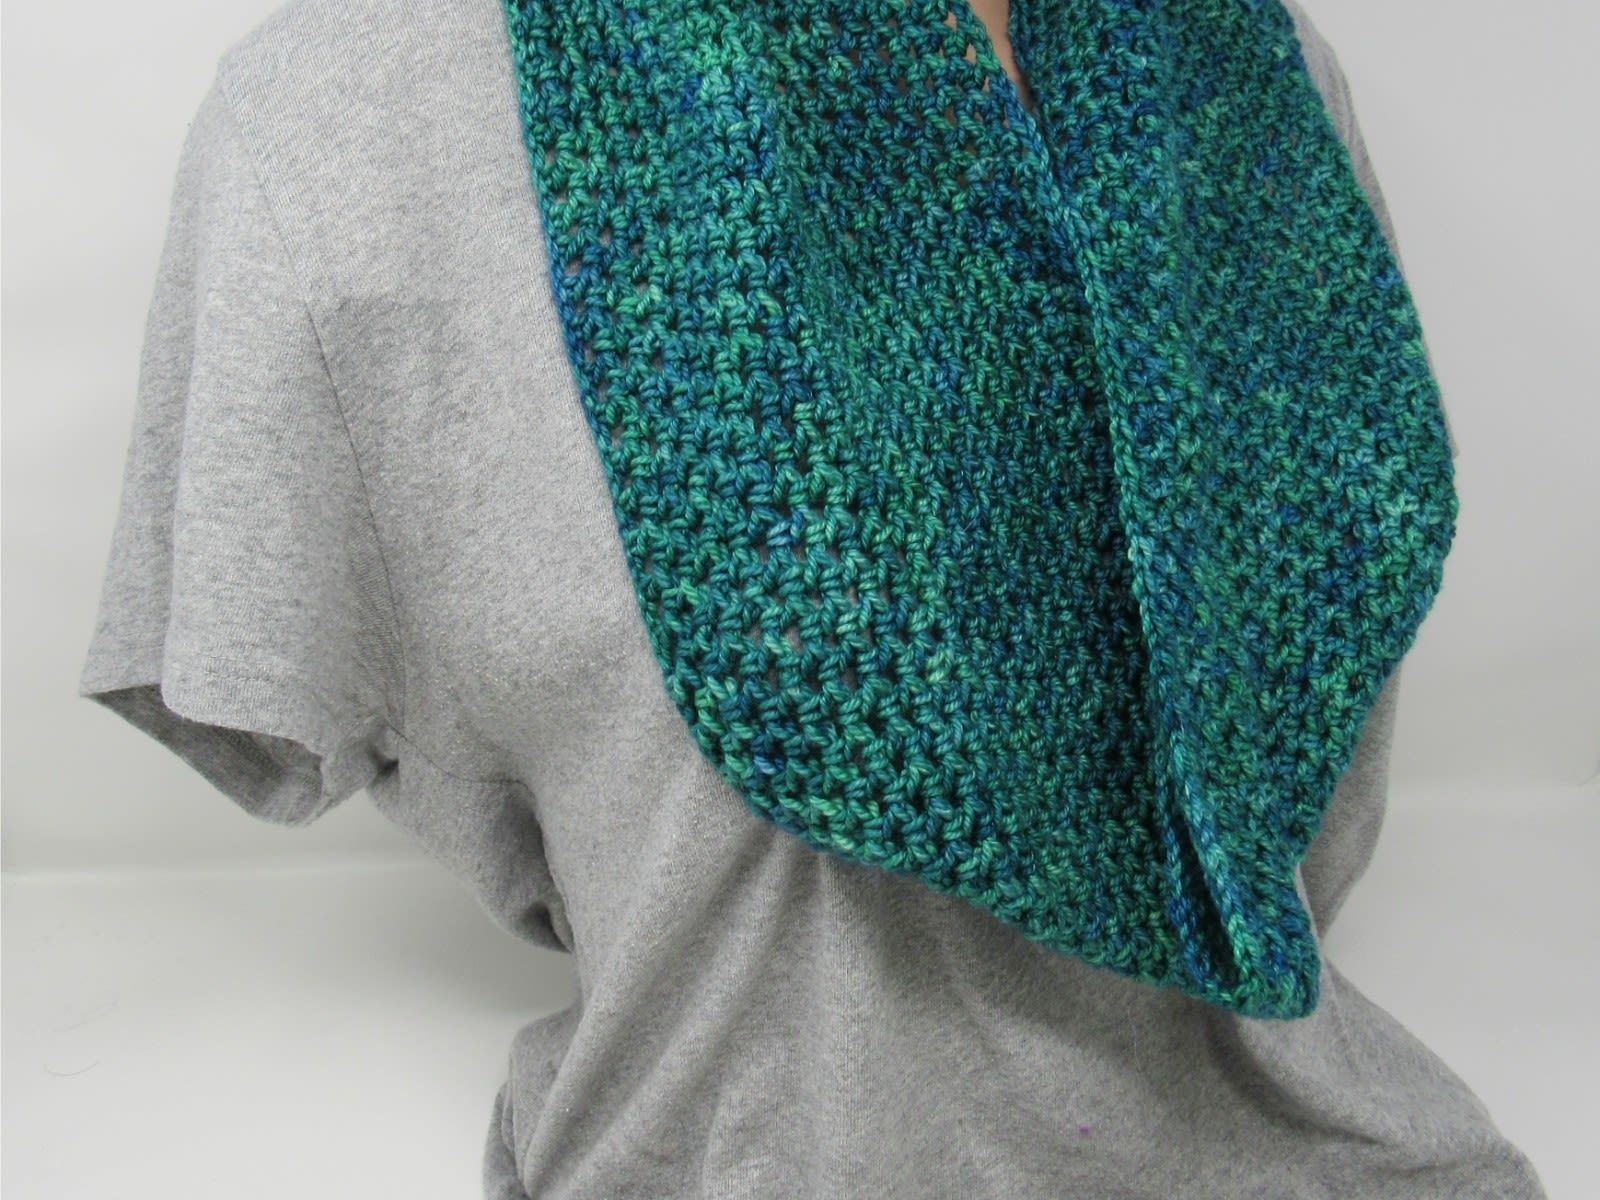 Handcrafted Crocheted Cowl Green/Teal Textured Merino Wool Female Adult